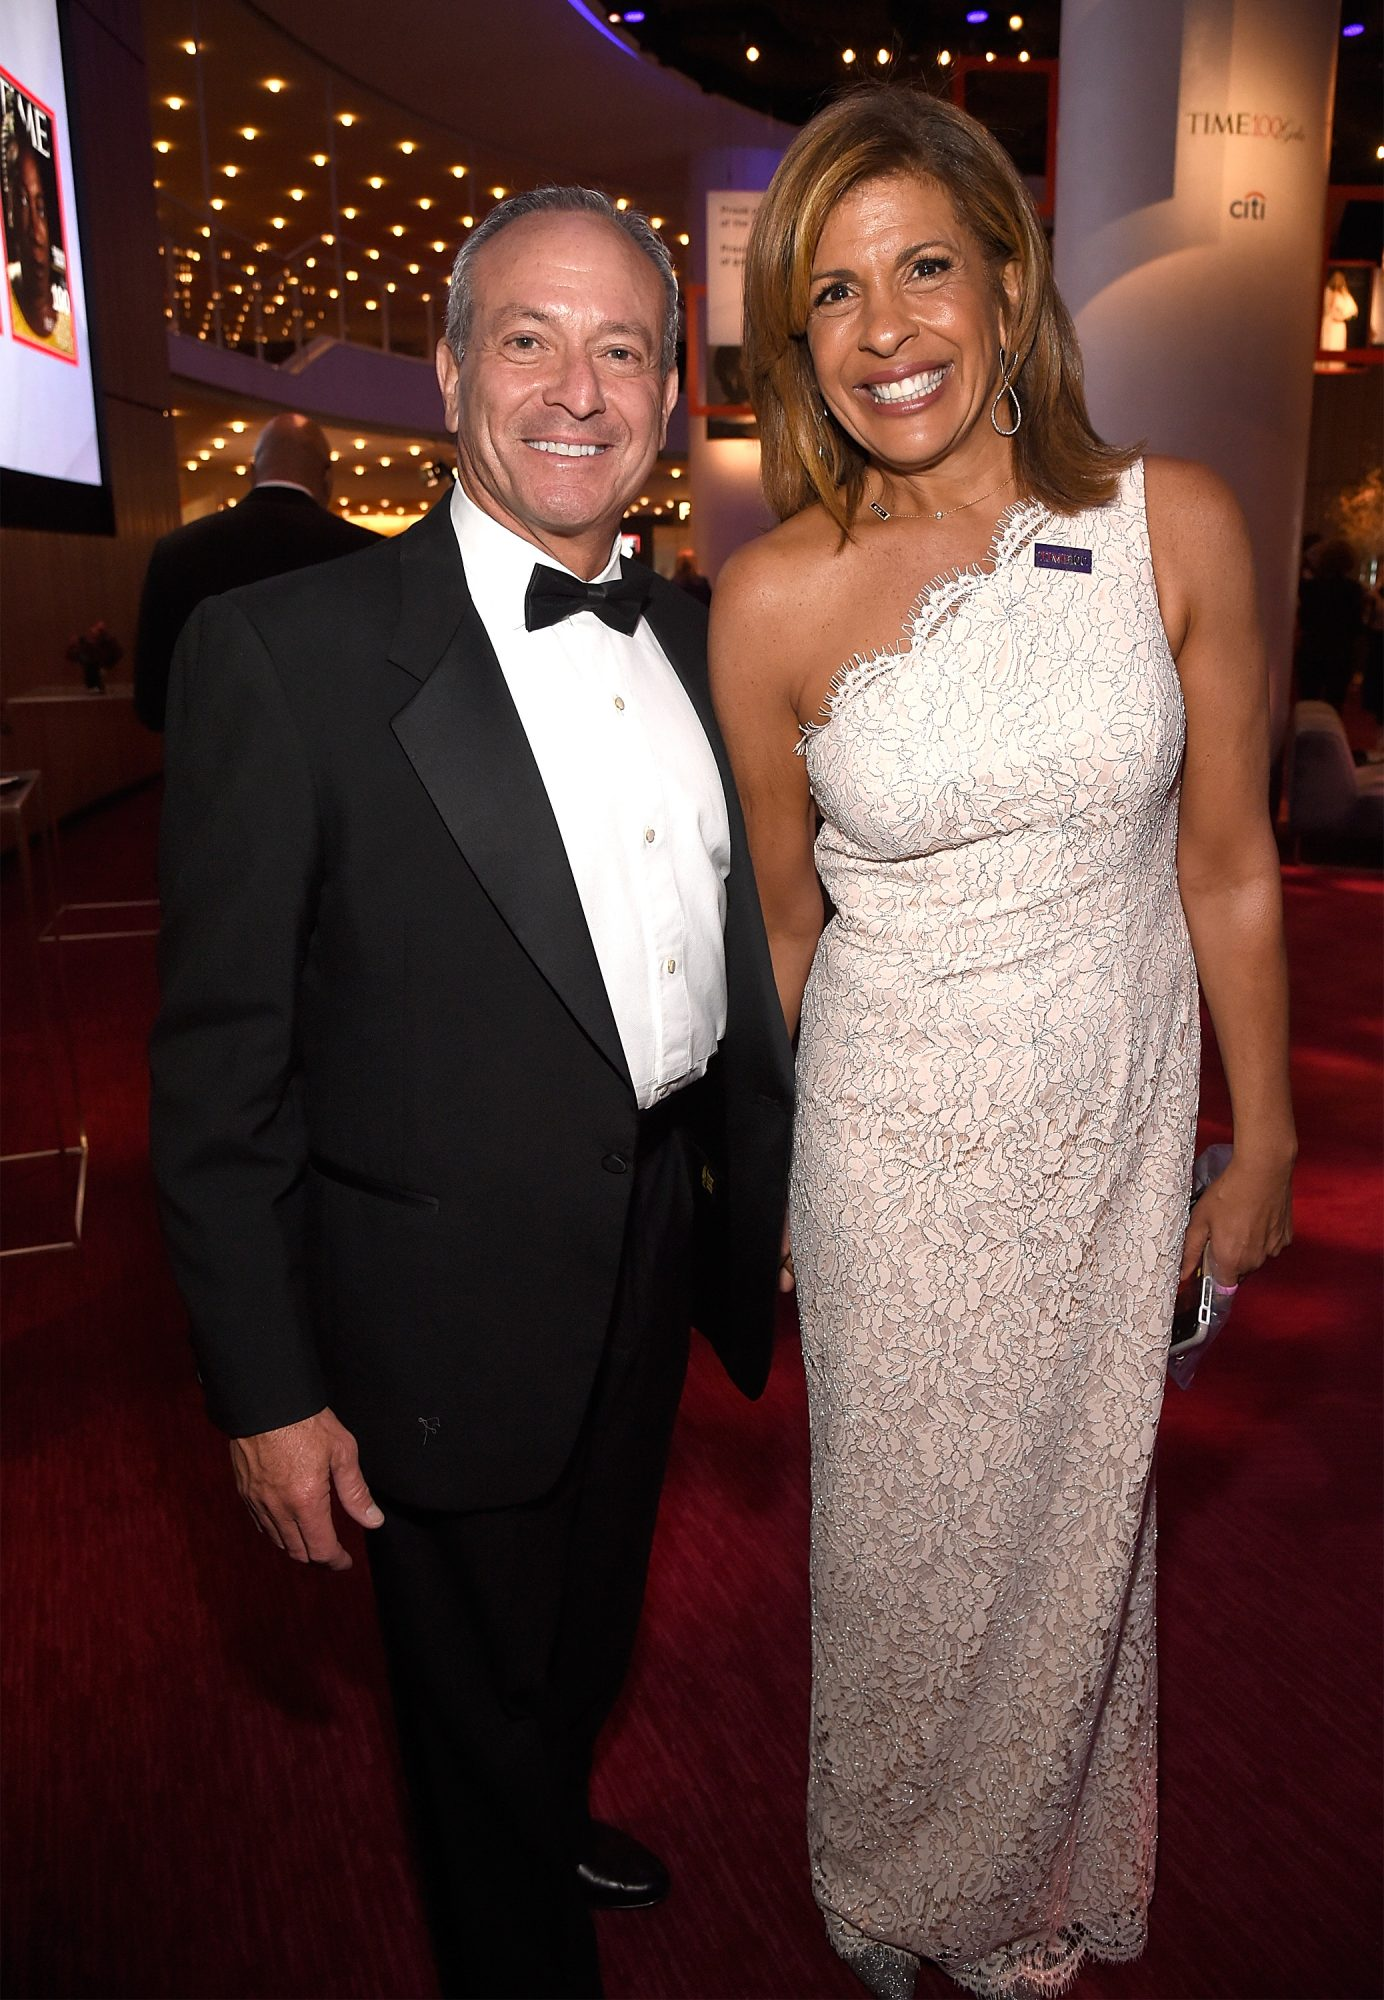 Today show co-host Hoda Kotb and Joel Schiffman